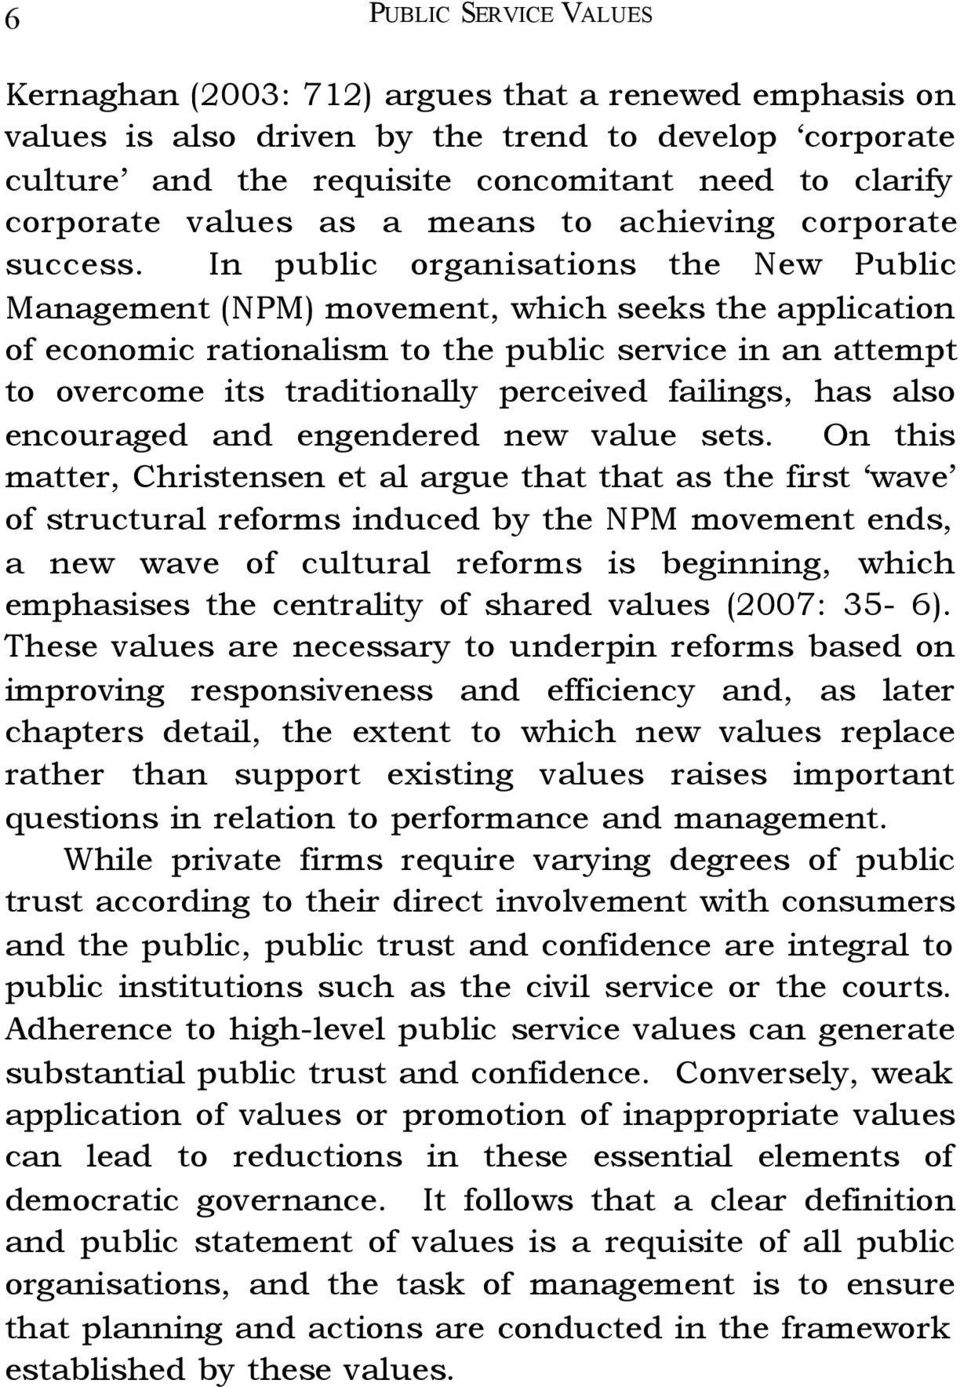 In public organisations the New Public Management (NPM) movement, which seeks the application of economic rationalism to the public service in an attempt to overcome its traditionally perceived